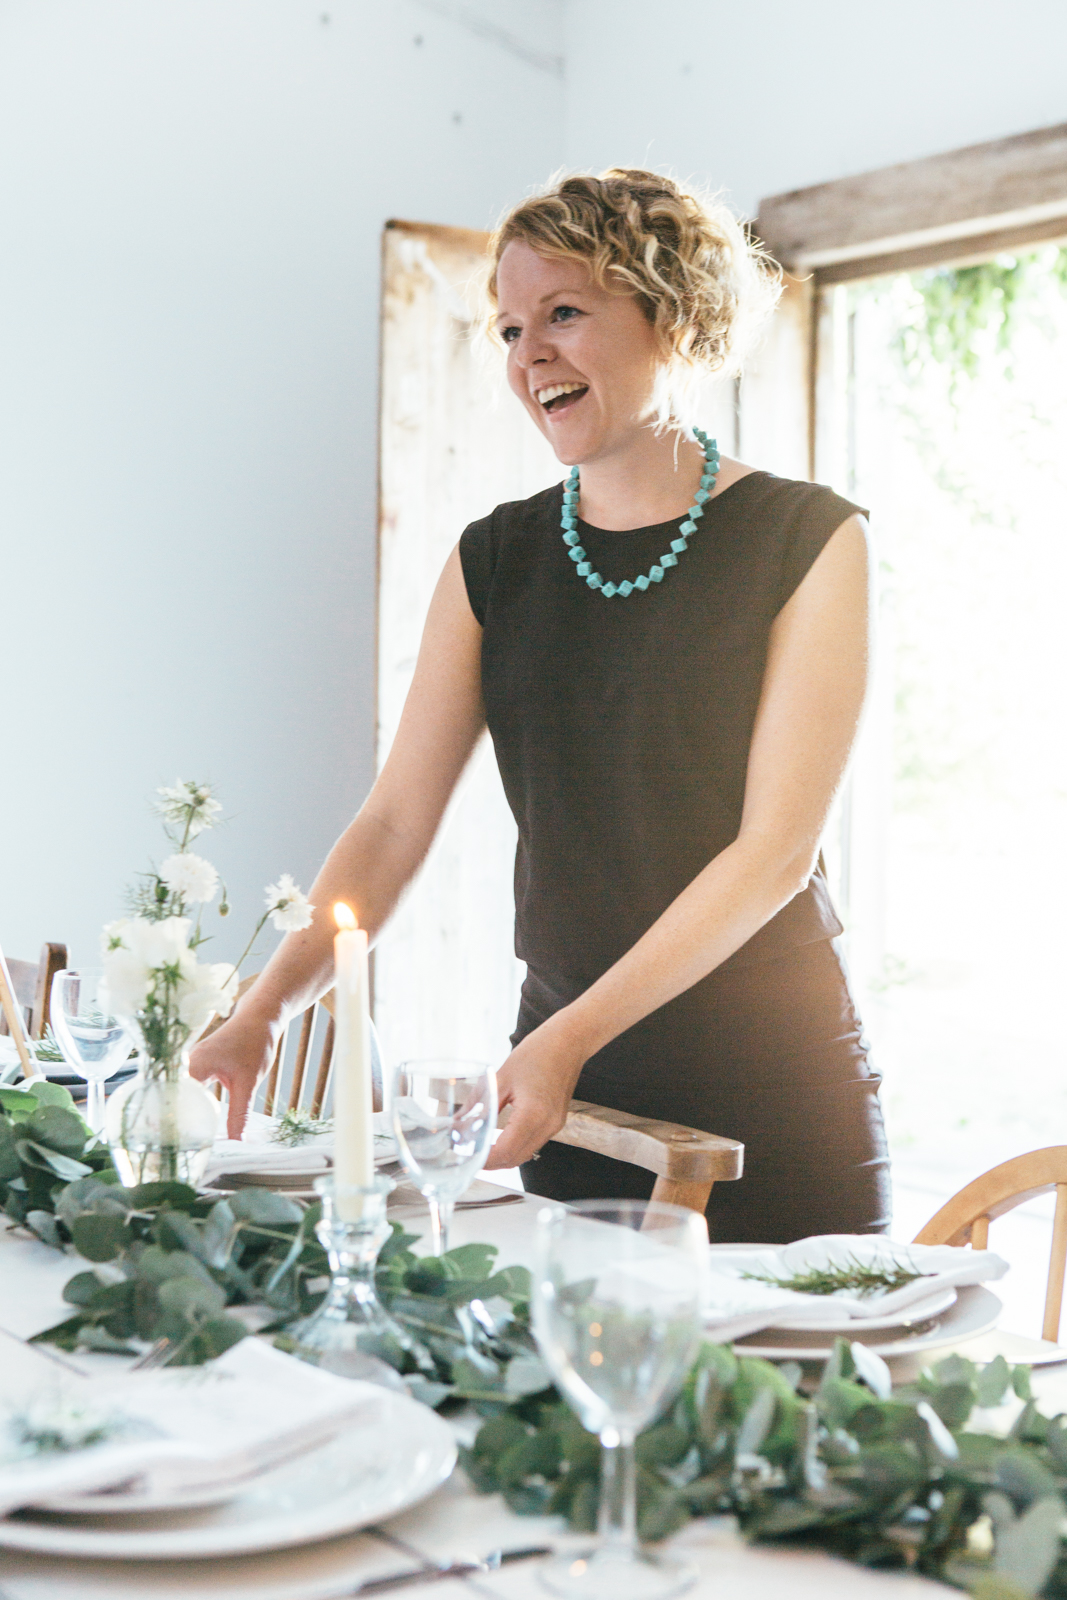 Jenny preparing a table at a real wedding in Cornwall as she's working as a wedding planner